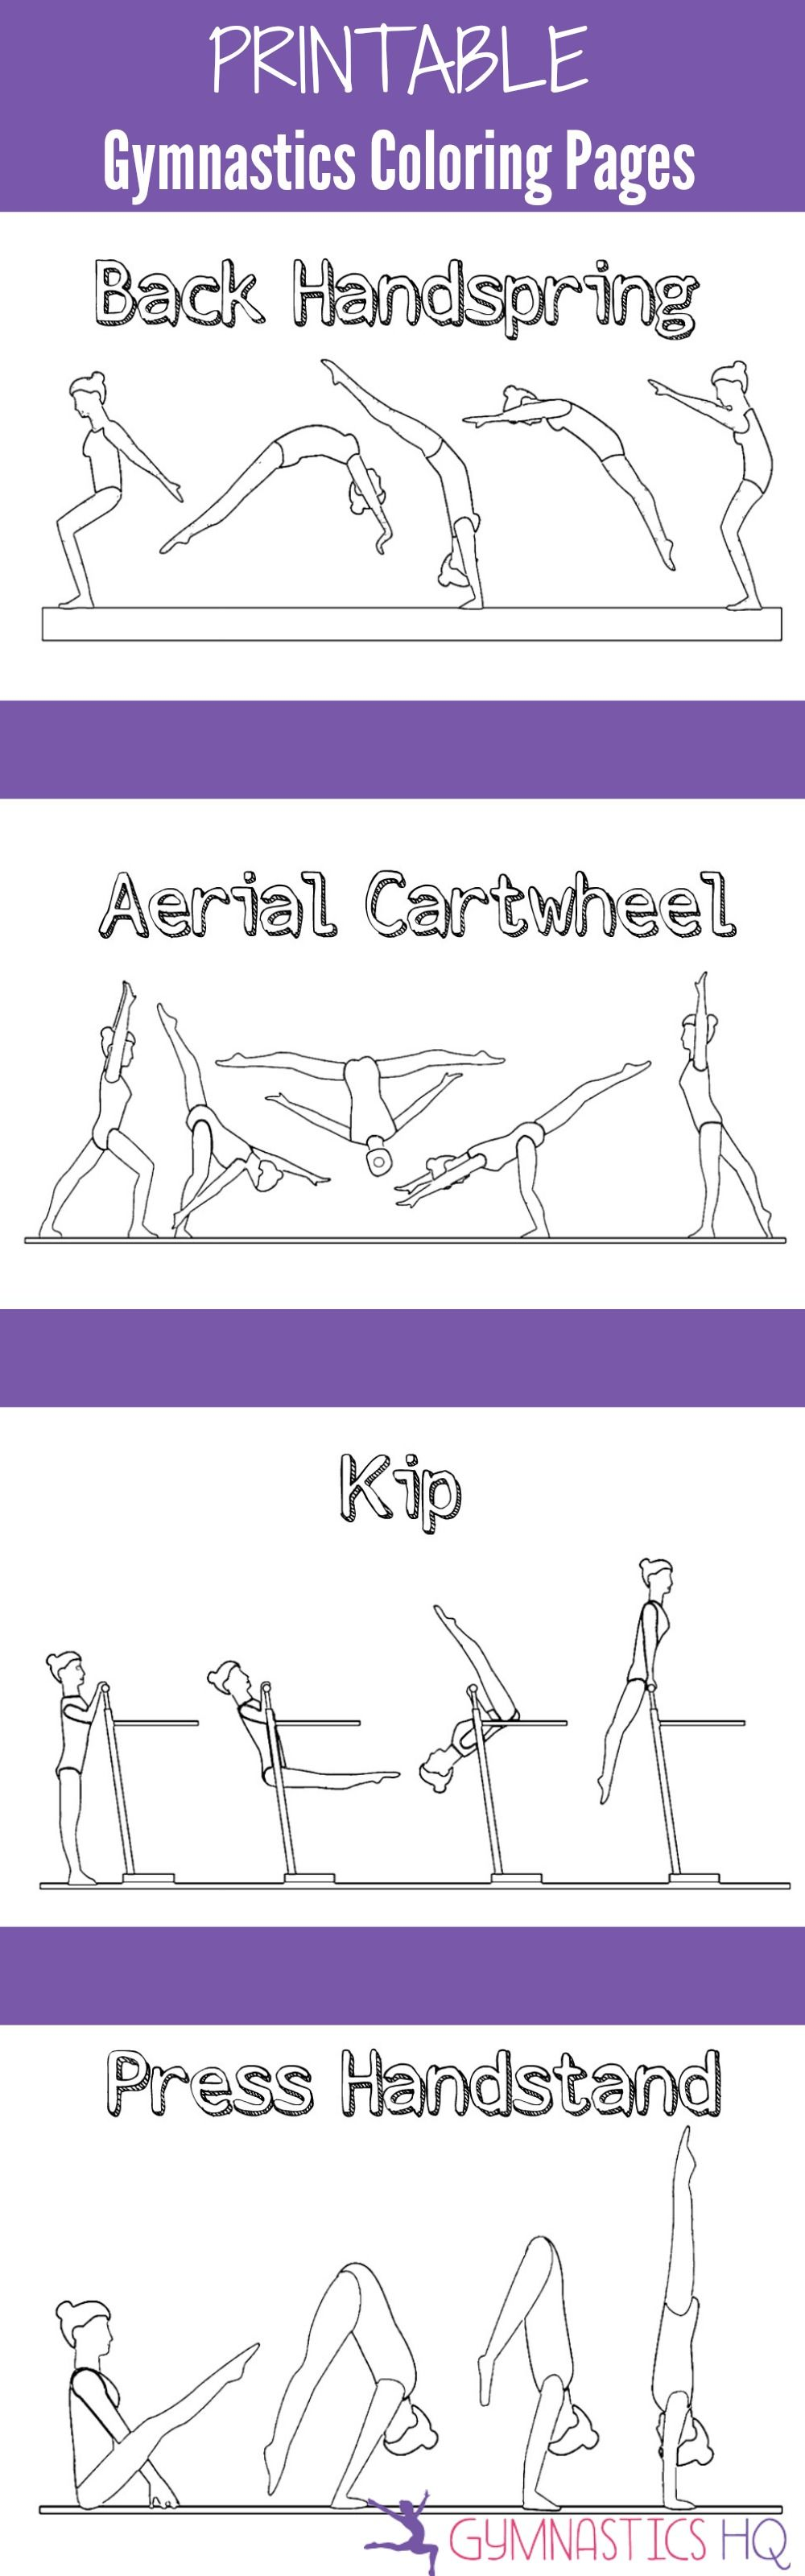 Coloring pictures gymnastics - Printable Gymnastics Coloring Pages 5 Pages Of Gymnastics Skills To Color